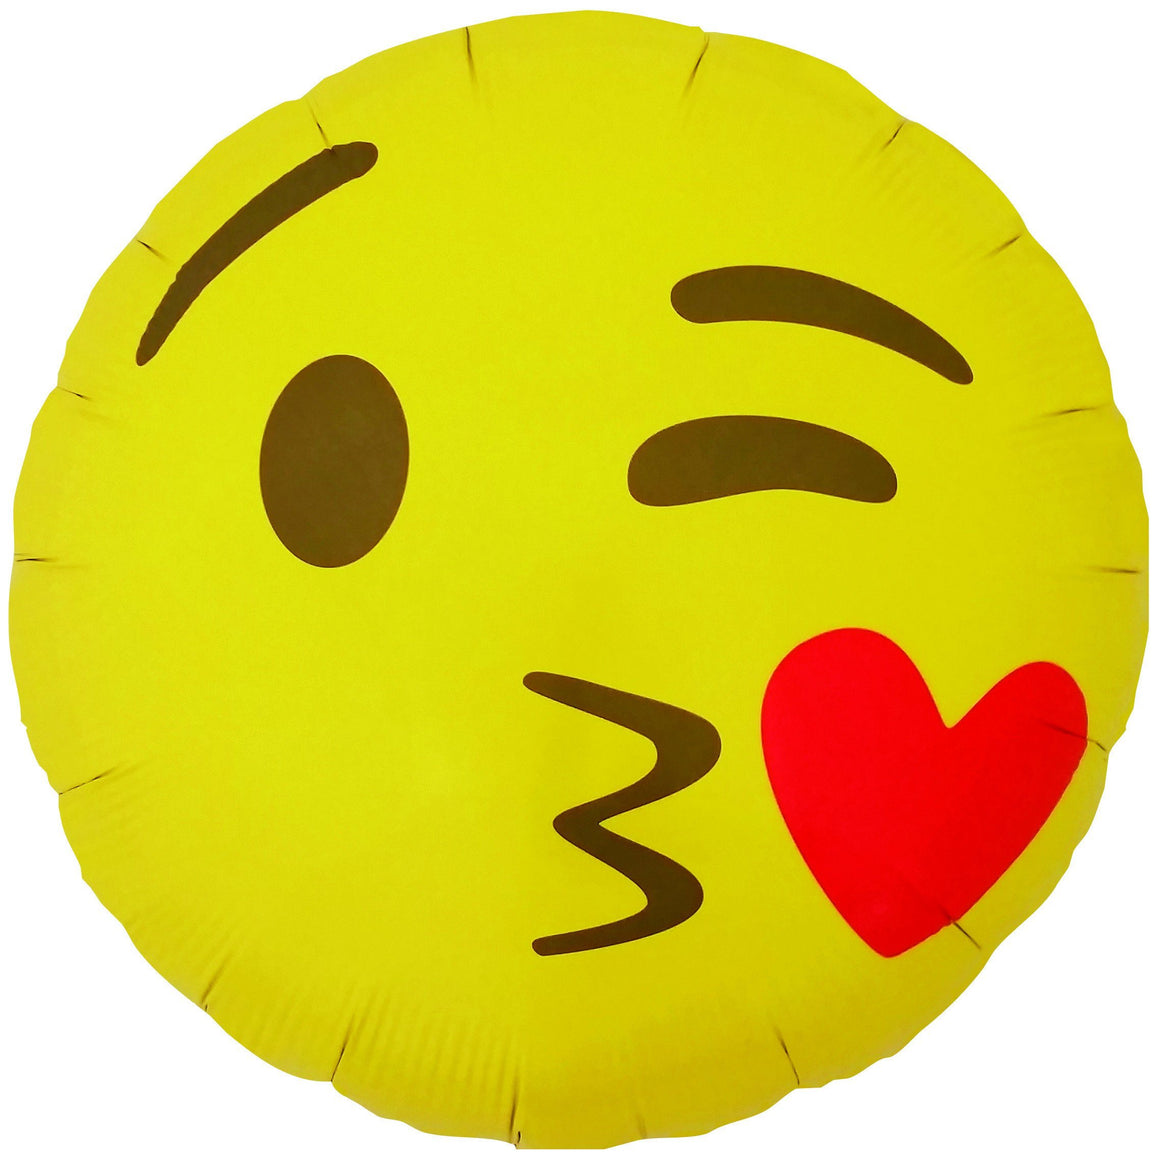 BALLOONS - EMOJI NORTHSTAR BLOW KISS, Balloons, Northstar - Bon + Co. Party Studio